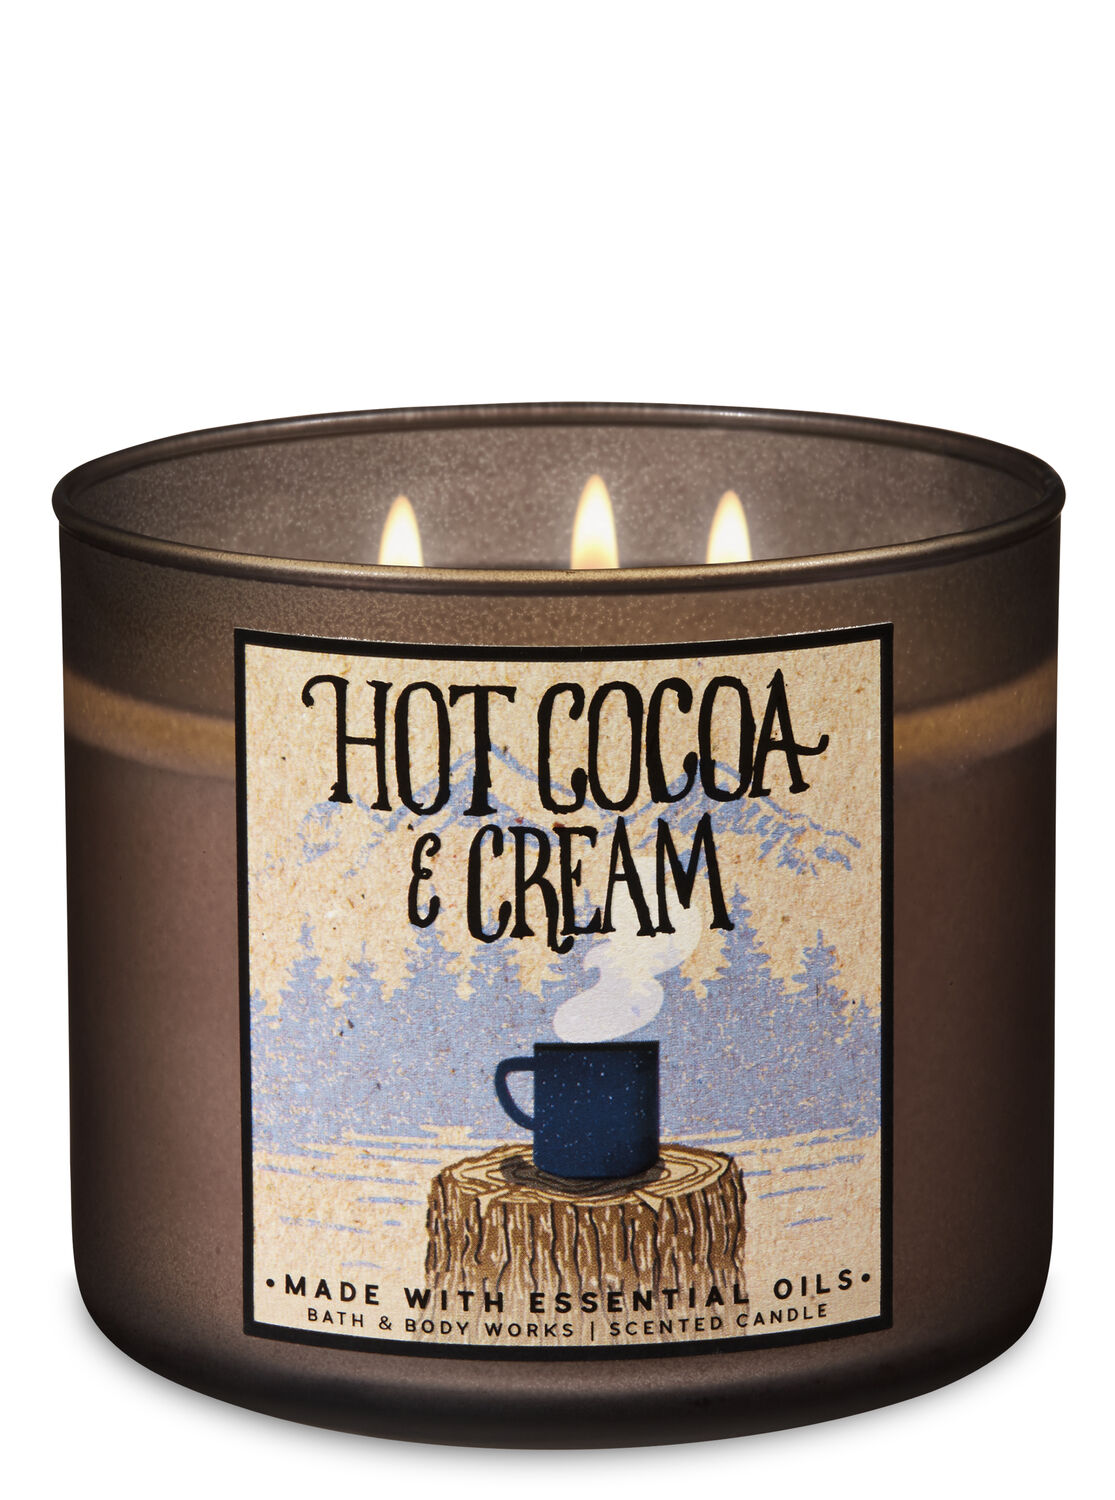 Hot Cocoa & Cream 3-Wick Candle - Bath And Body Works